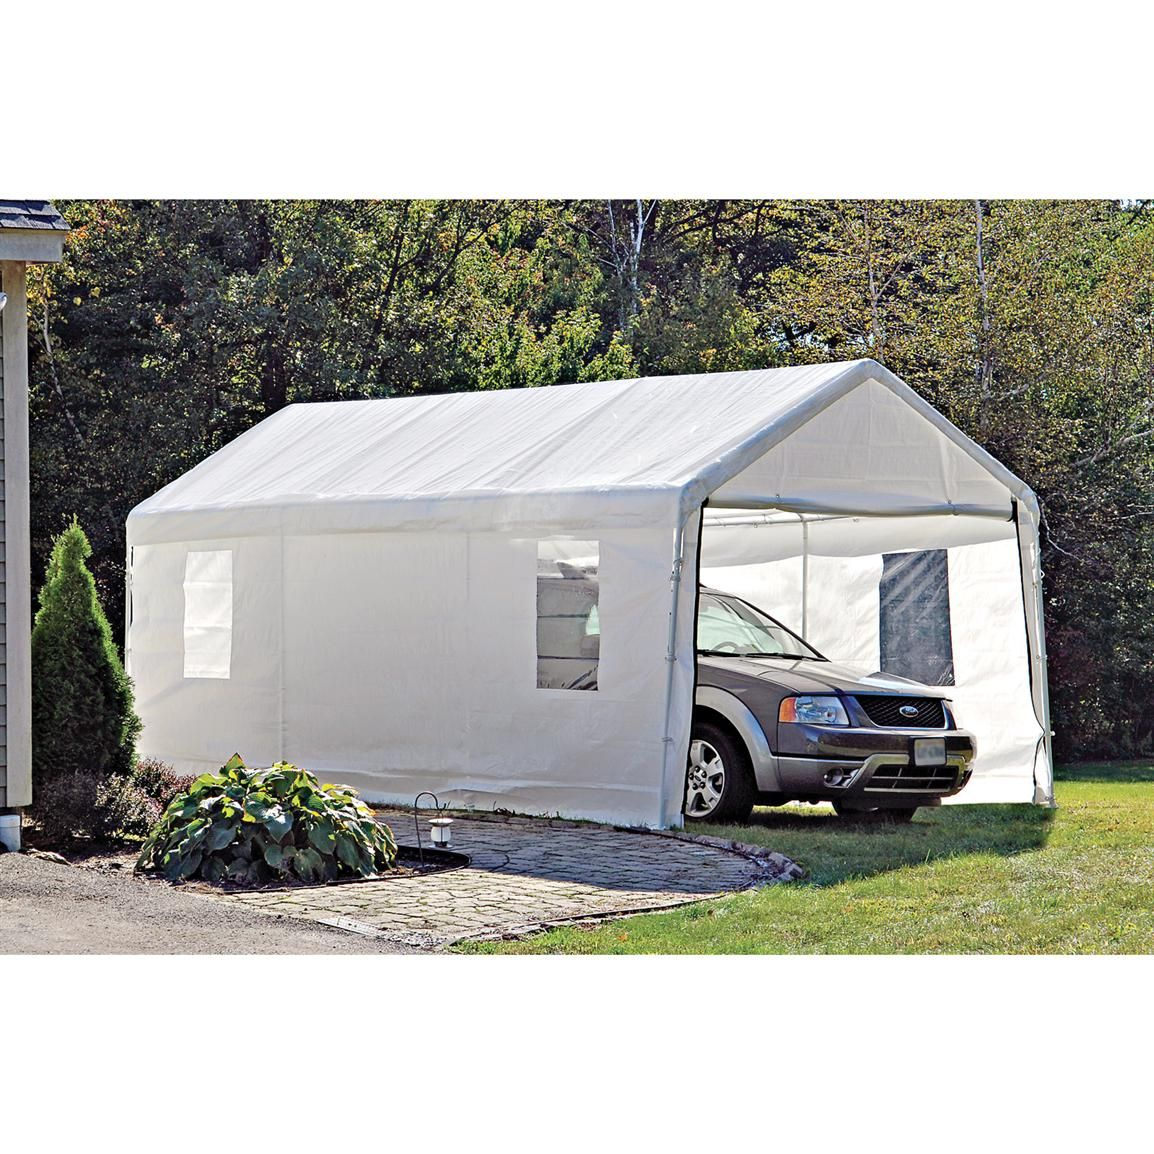 10x20 Instant Garage Shelter White 117083 Garage Car Shelters At Sportsman S Guide Portable Carport Portable Garage Carport Canopy